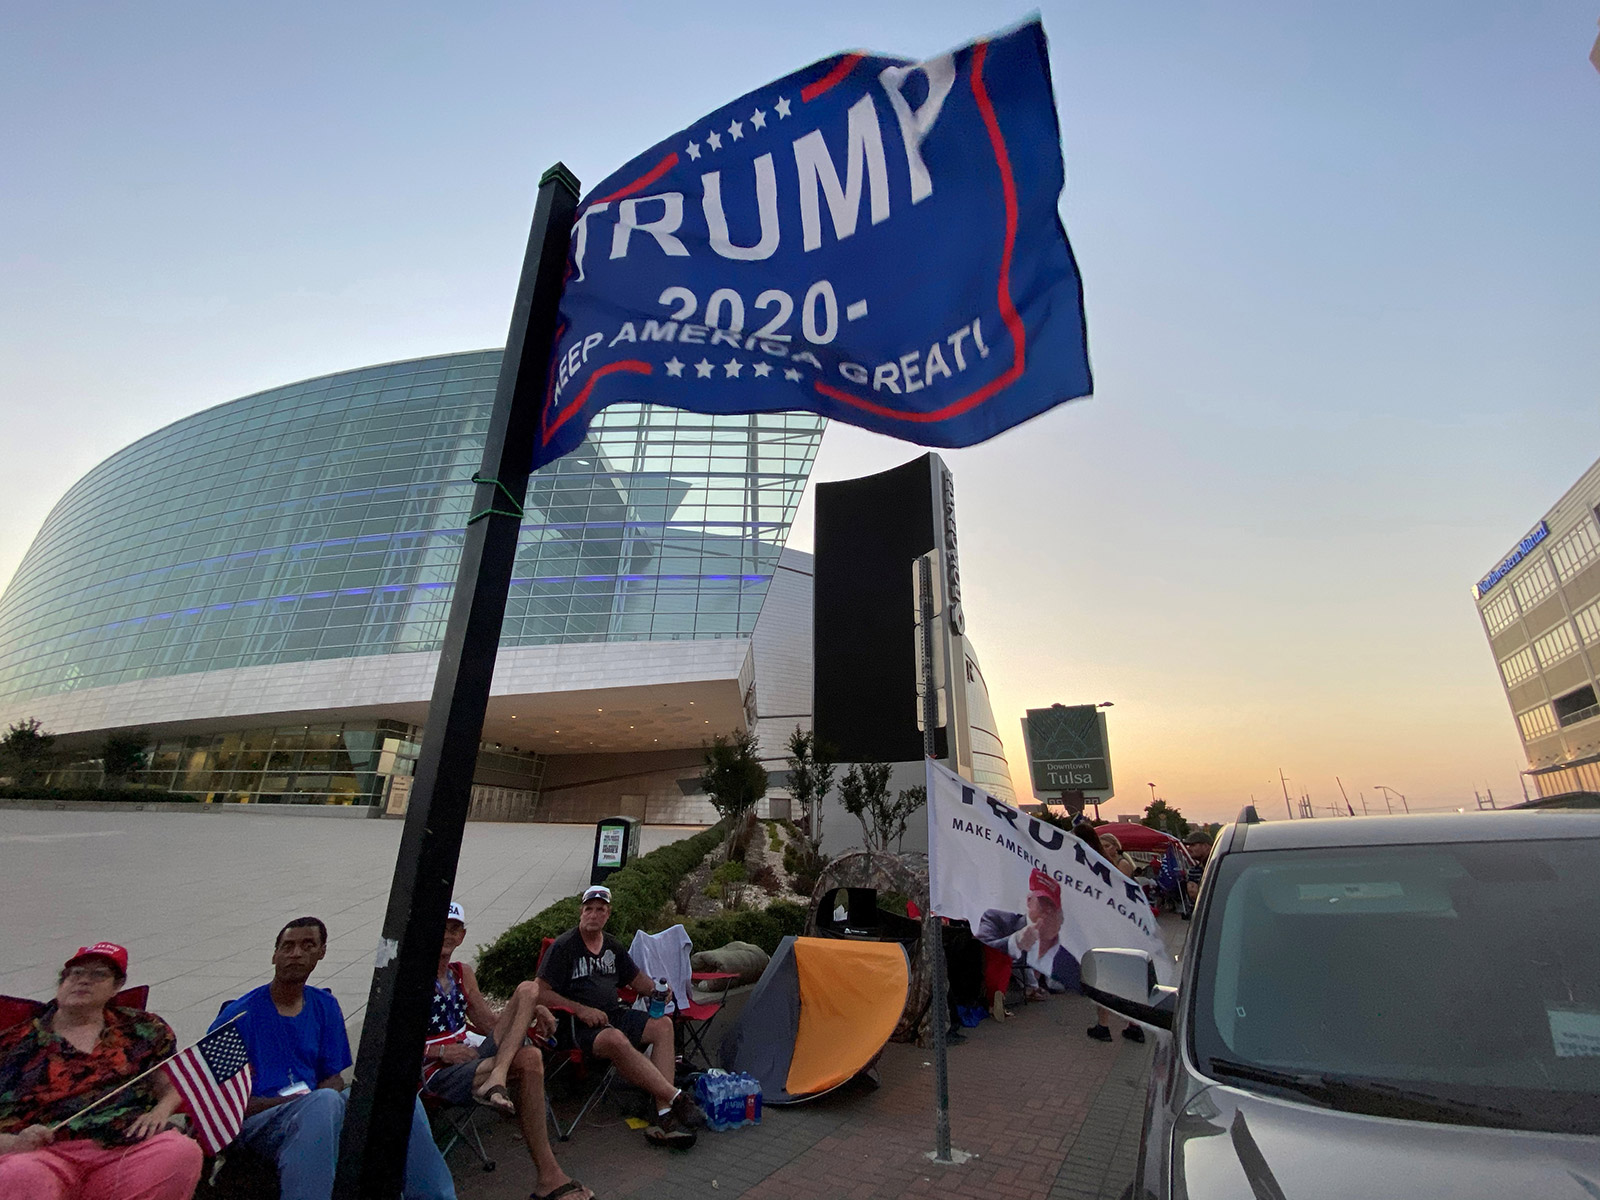 On Wednesday, President Trump supporters are seen camping outside the venue for his upcoming rally inTulsa,Oklahoma.